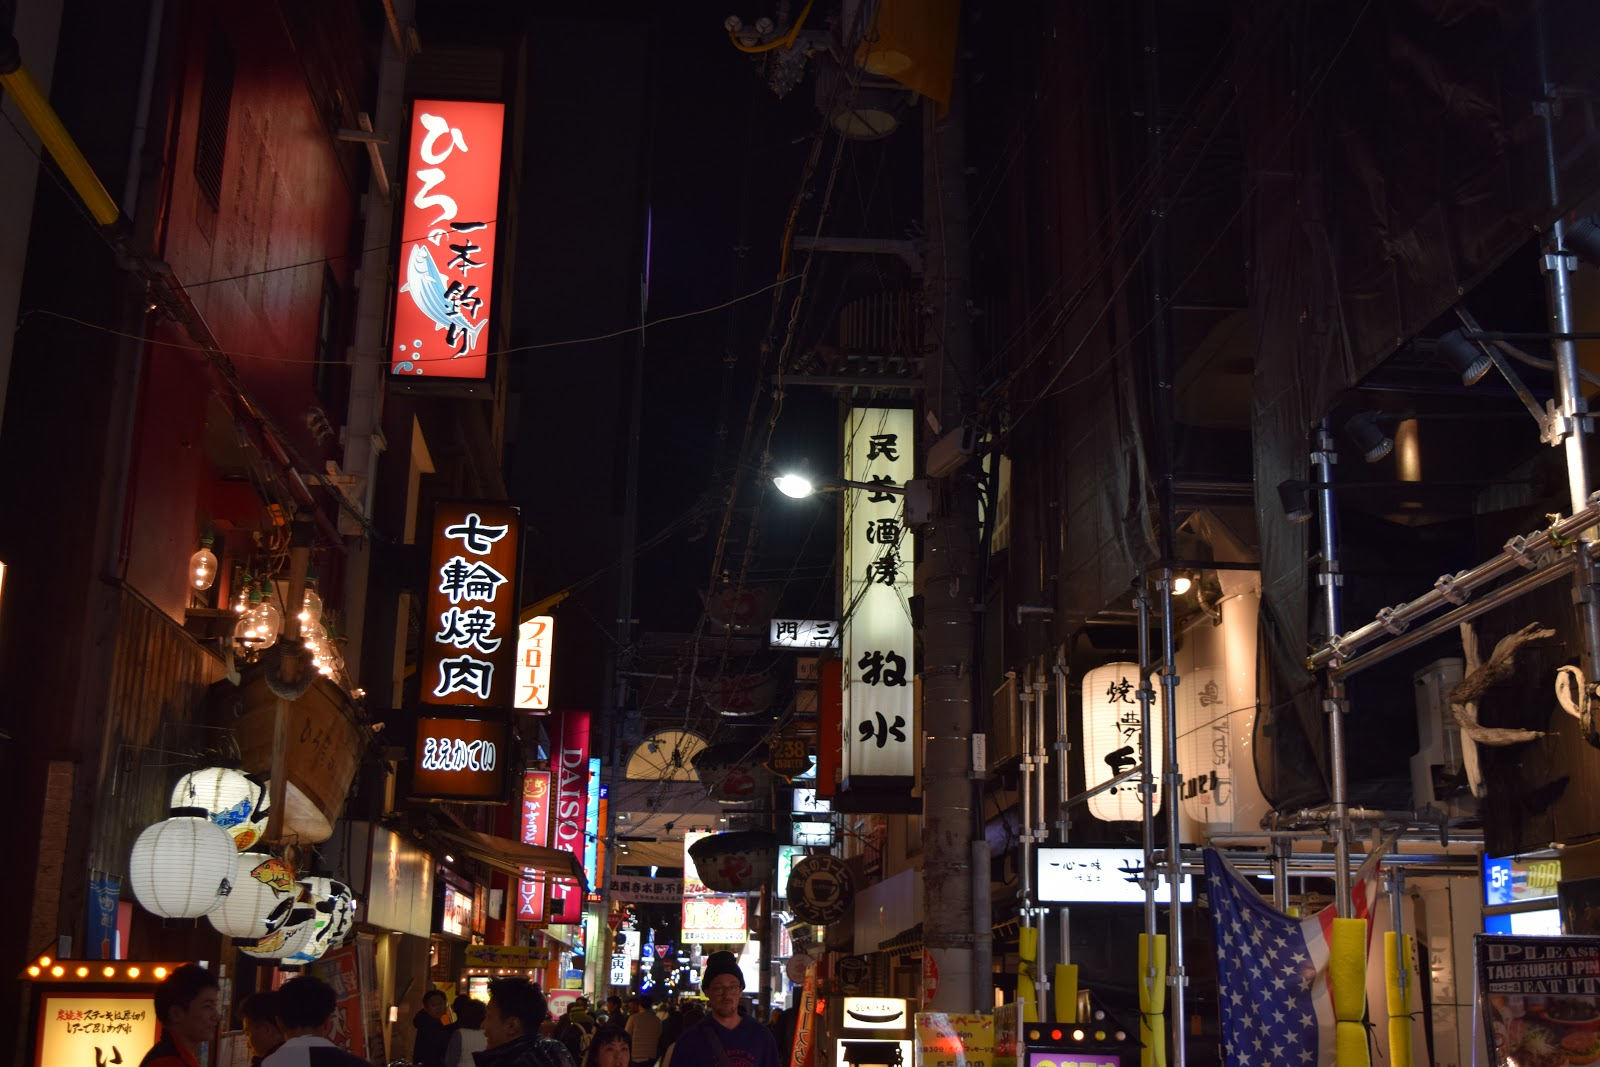 street signs, neon and crowds in Osaka at night